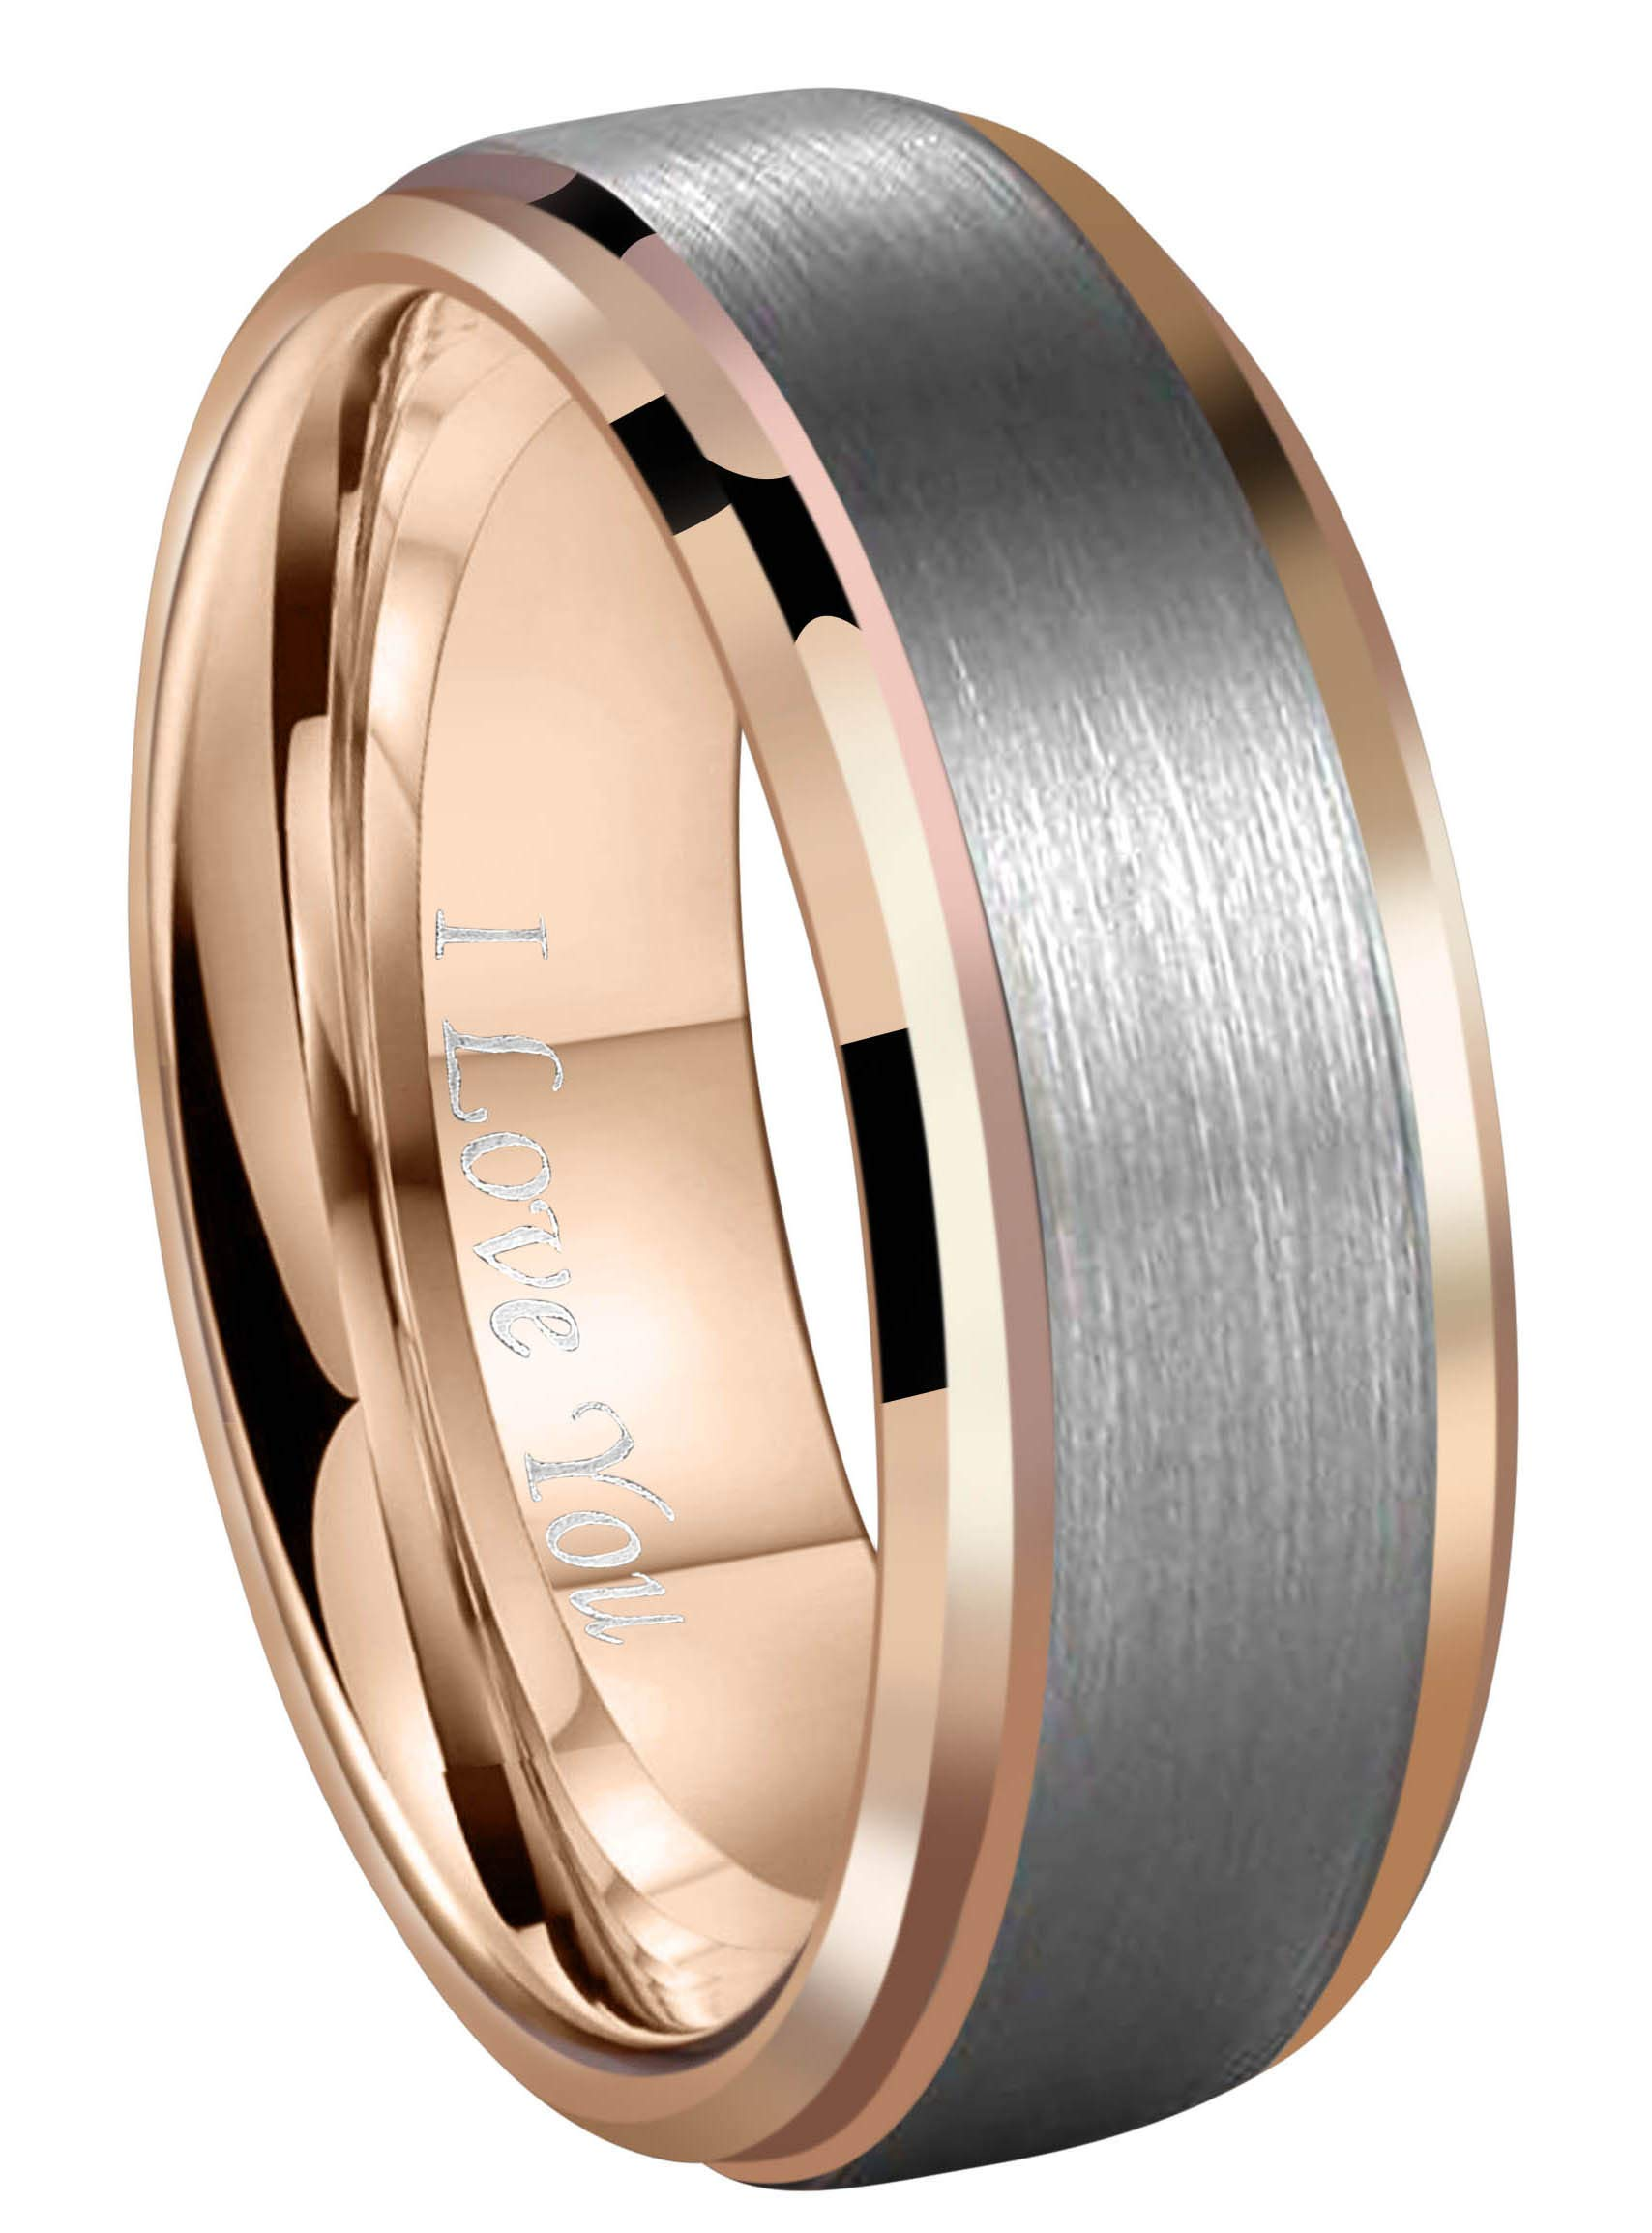 Crownal 8mm 18K Rose Gold Tungsten Wedding Band Ring Men Women Brushed Center Beveled Edges Comfort Fit Engraved''I Love You'' Size 6 To 17 (8mm,17)